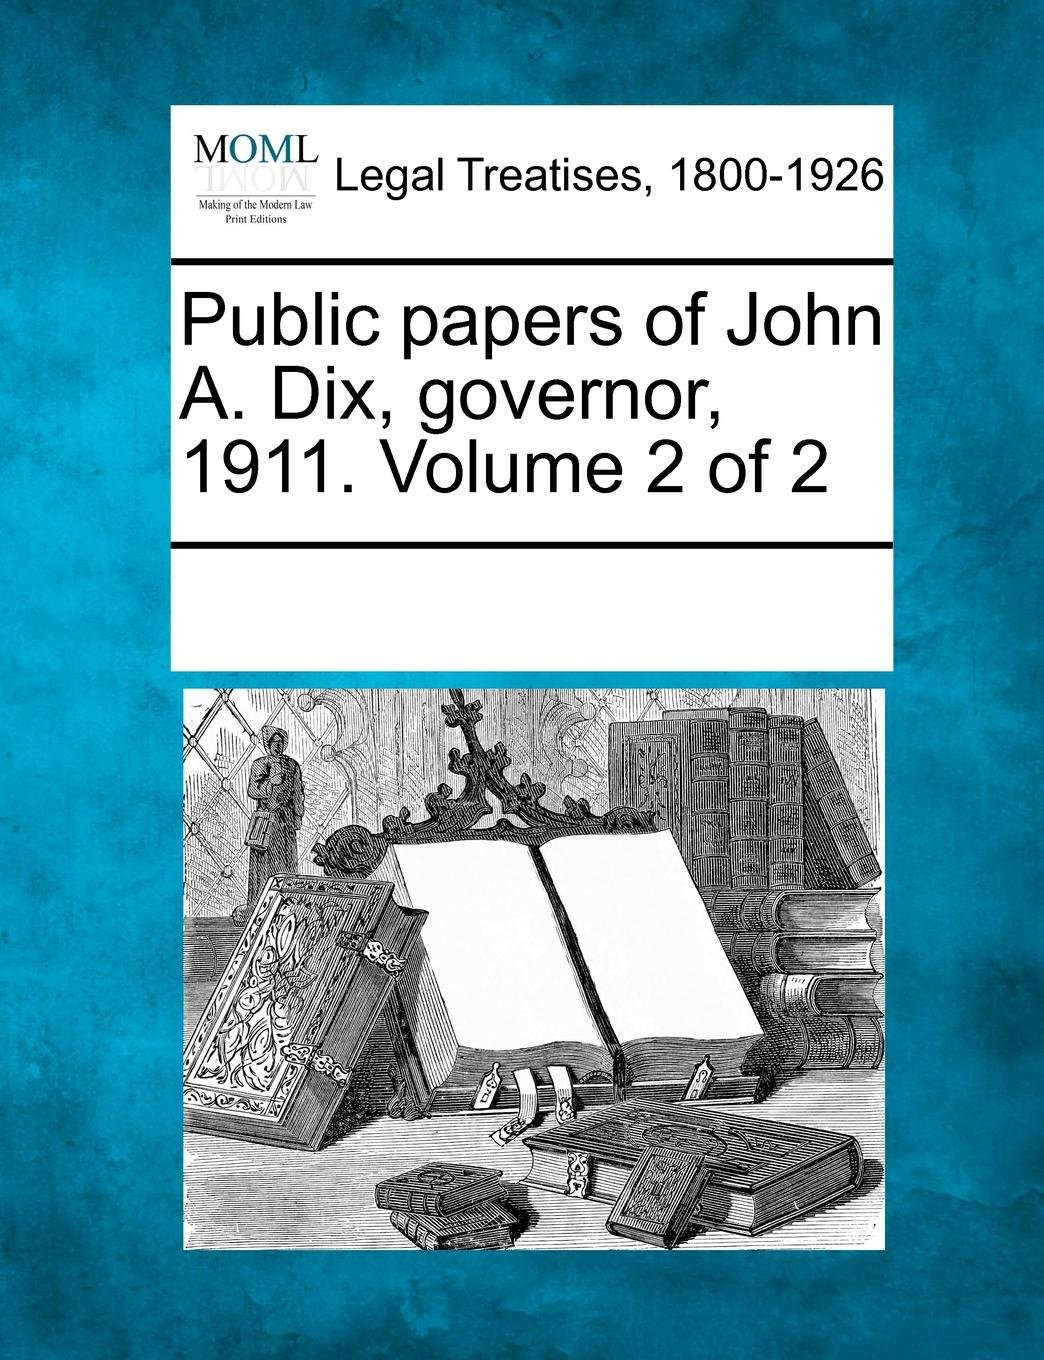 Public papers of John A. Dix, governor, 1911. Volume 2 of 2 ebook